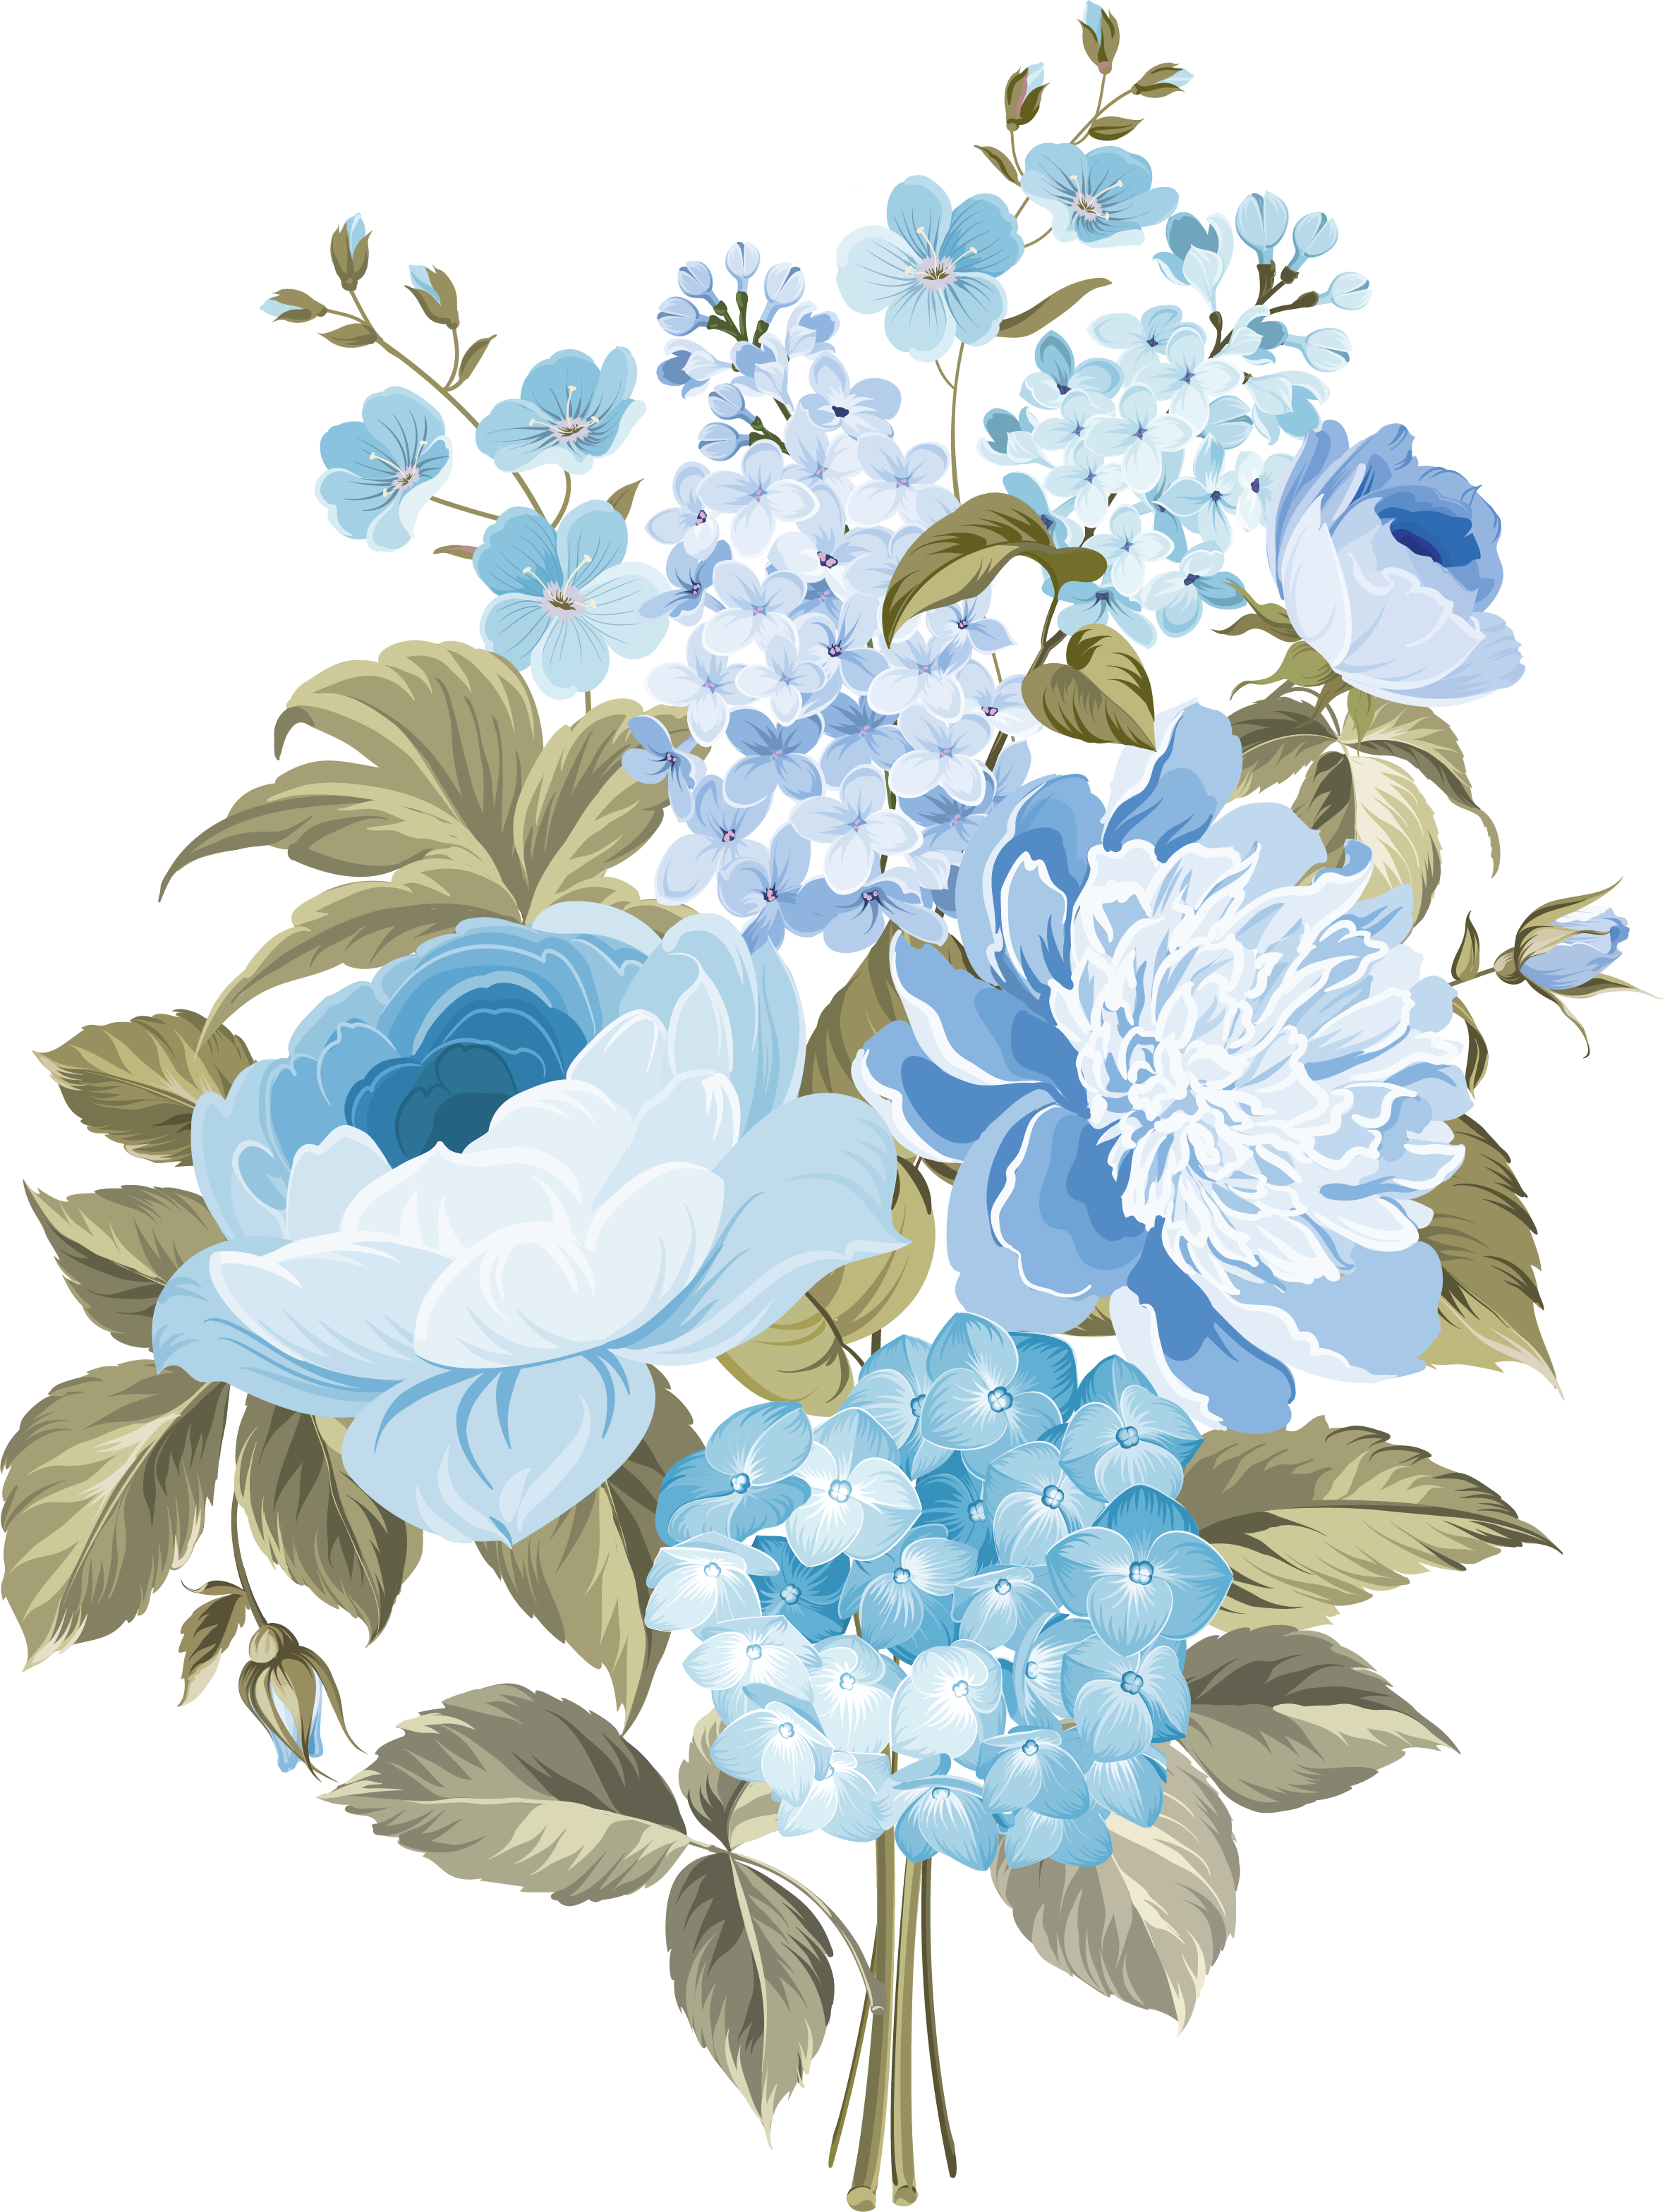 Drawing wallpapers flower. My design blue flowers